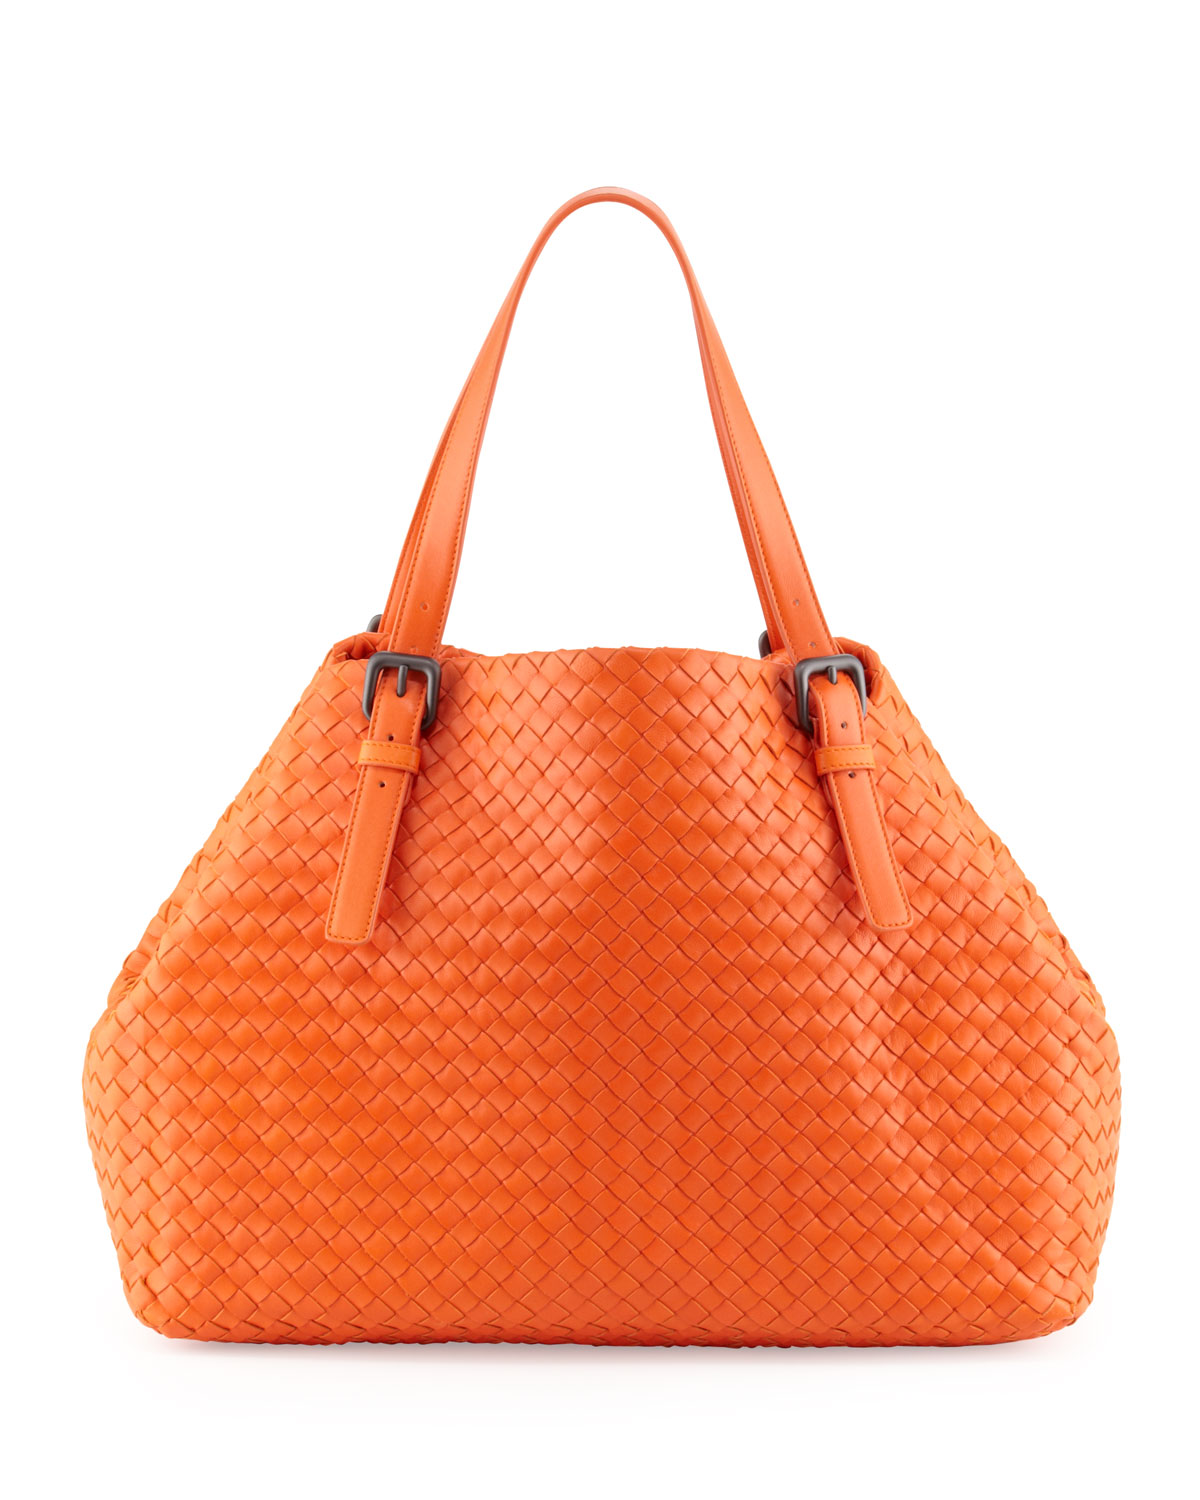 29160aa673d5 Large Leather Bag Tangerine Orange Lamb Leather by